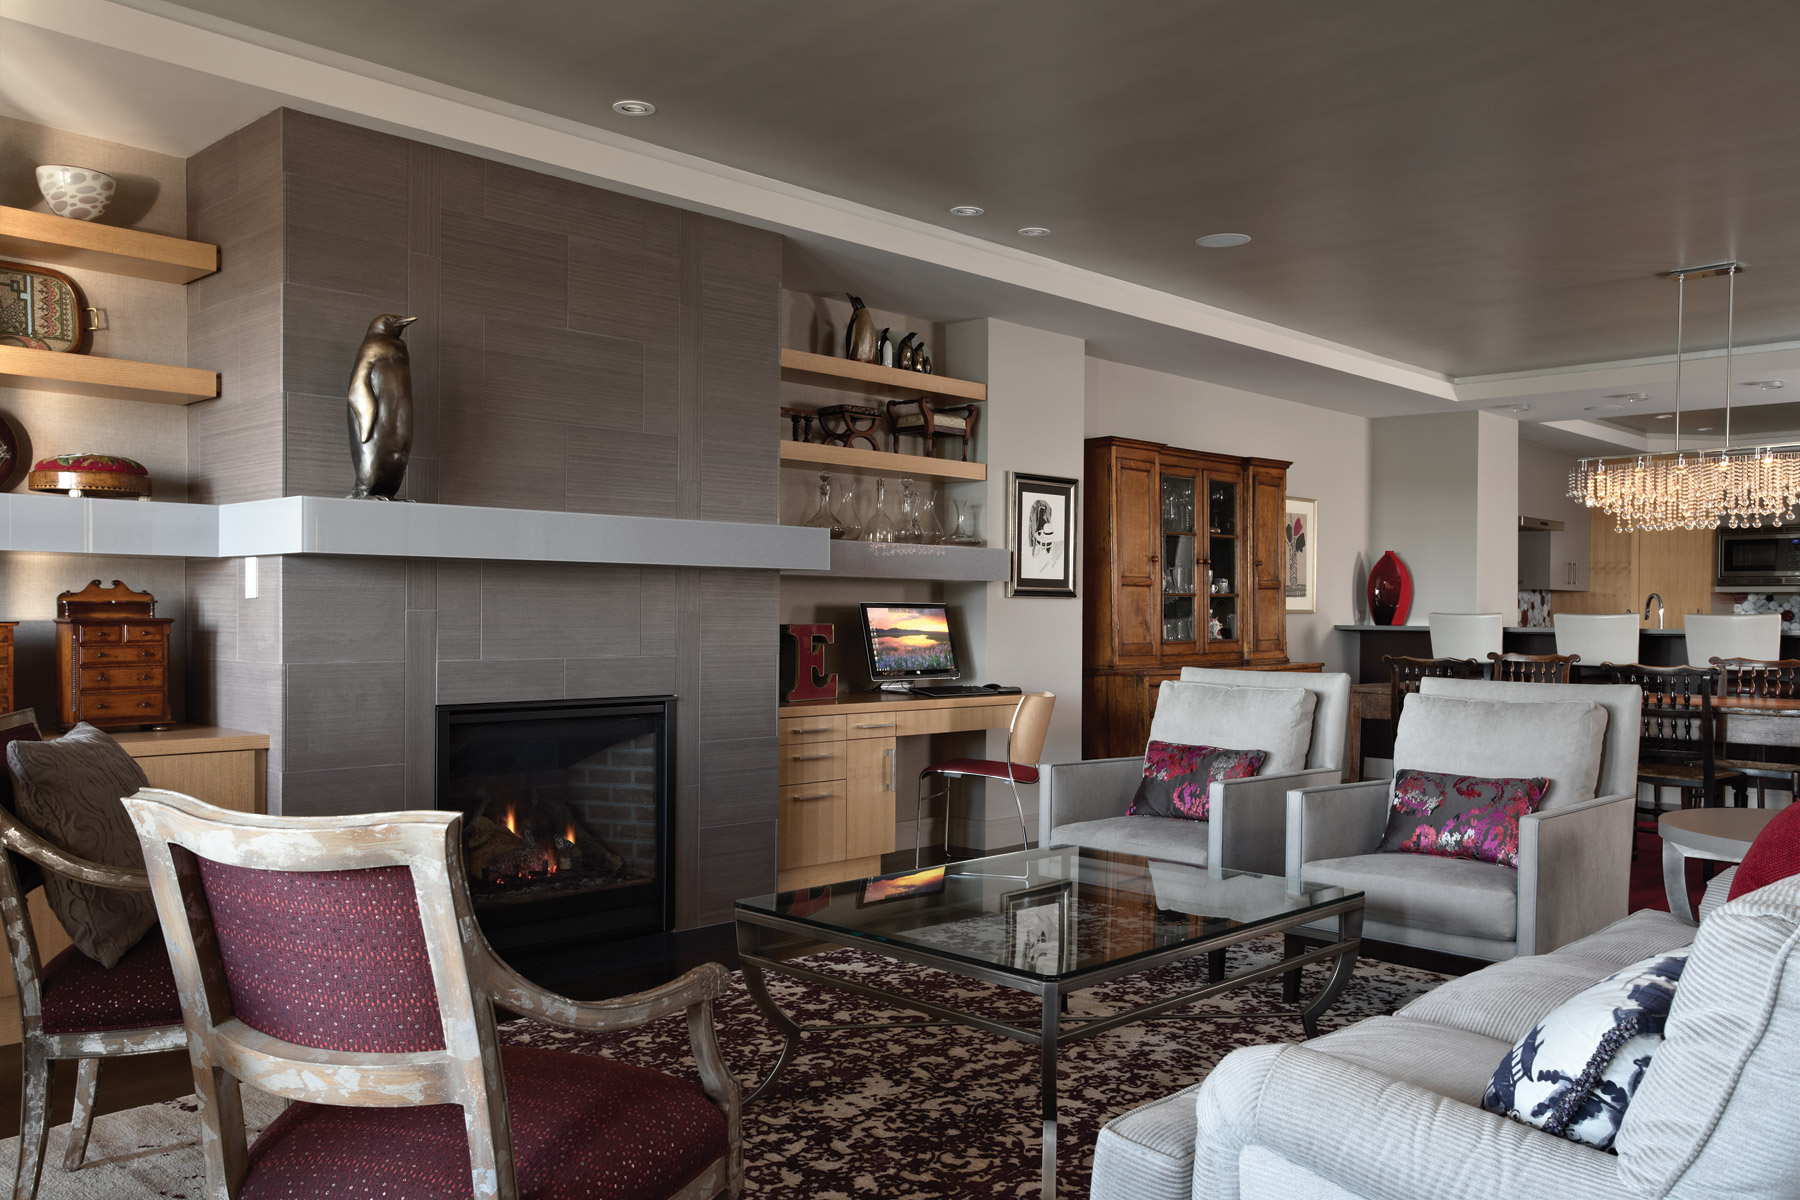 Exceptional-Condomimium-Living-Room-Fireplace-Minneapolis-interior-designer.jpeg